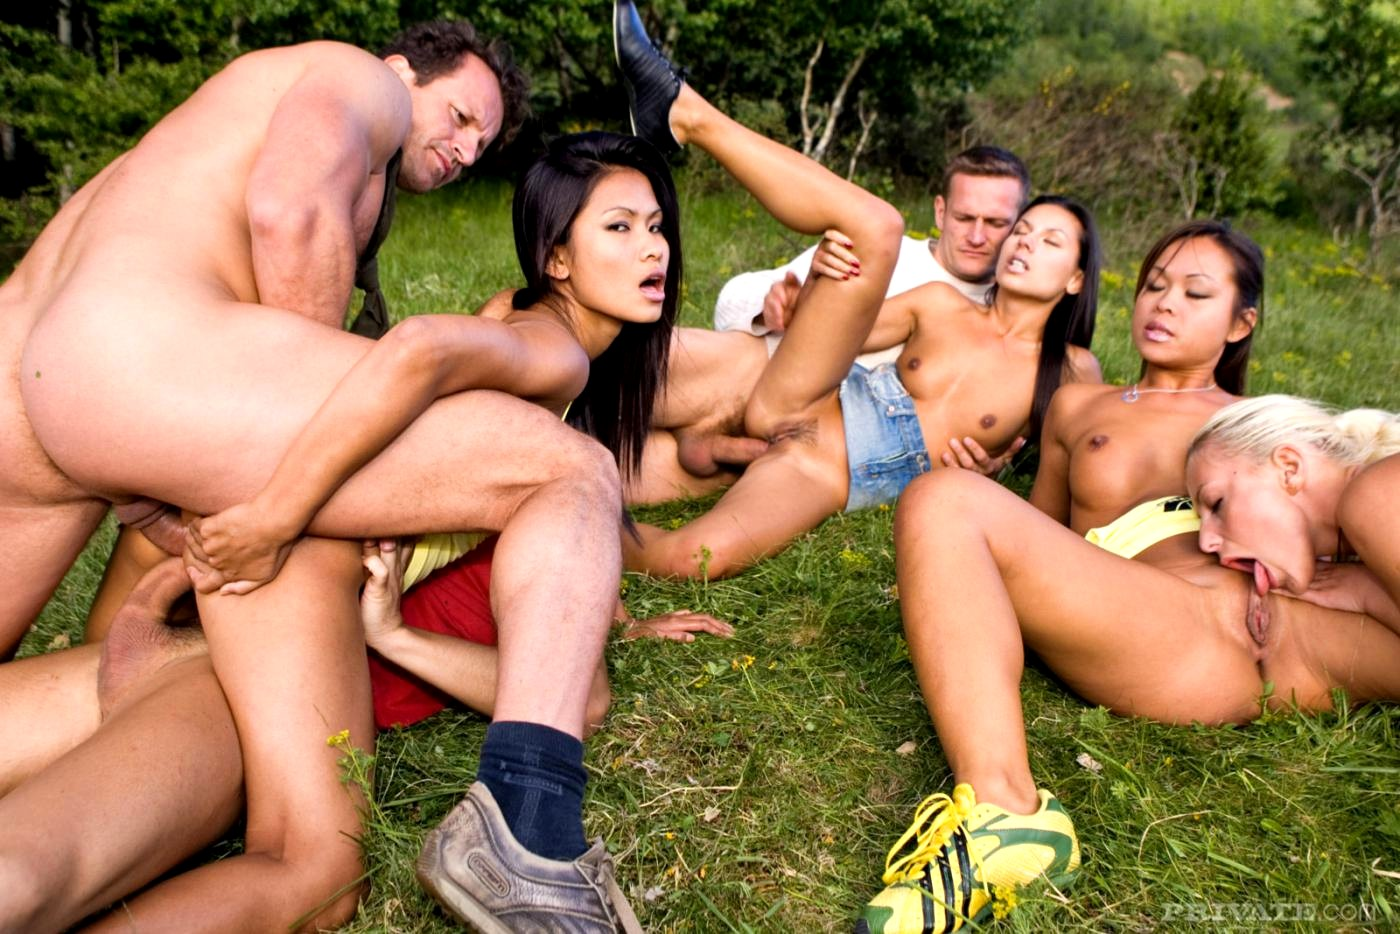 group-sex-happy-village-australian-swinger-web-sites